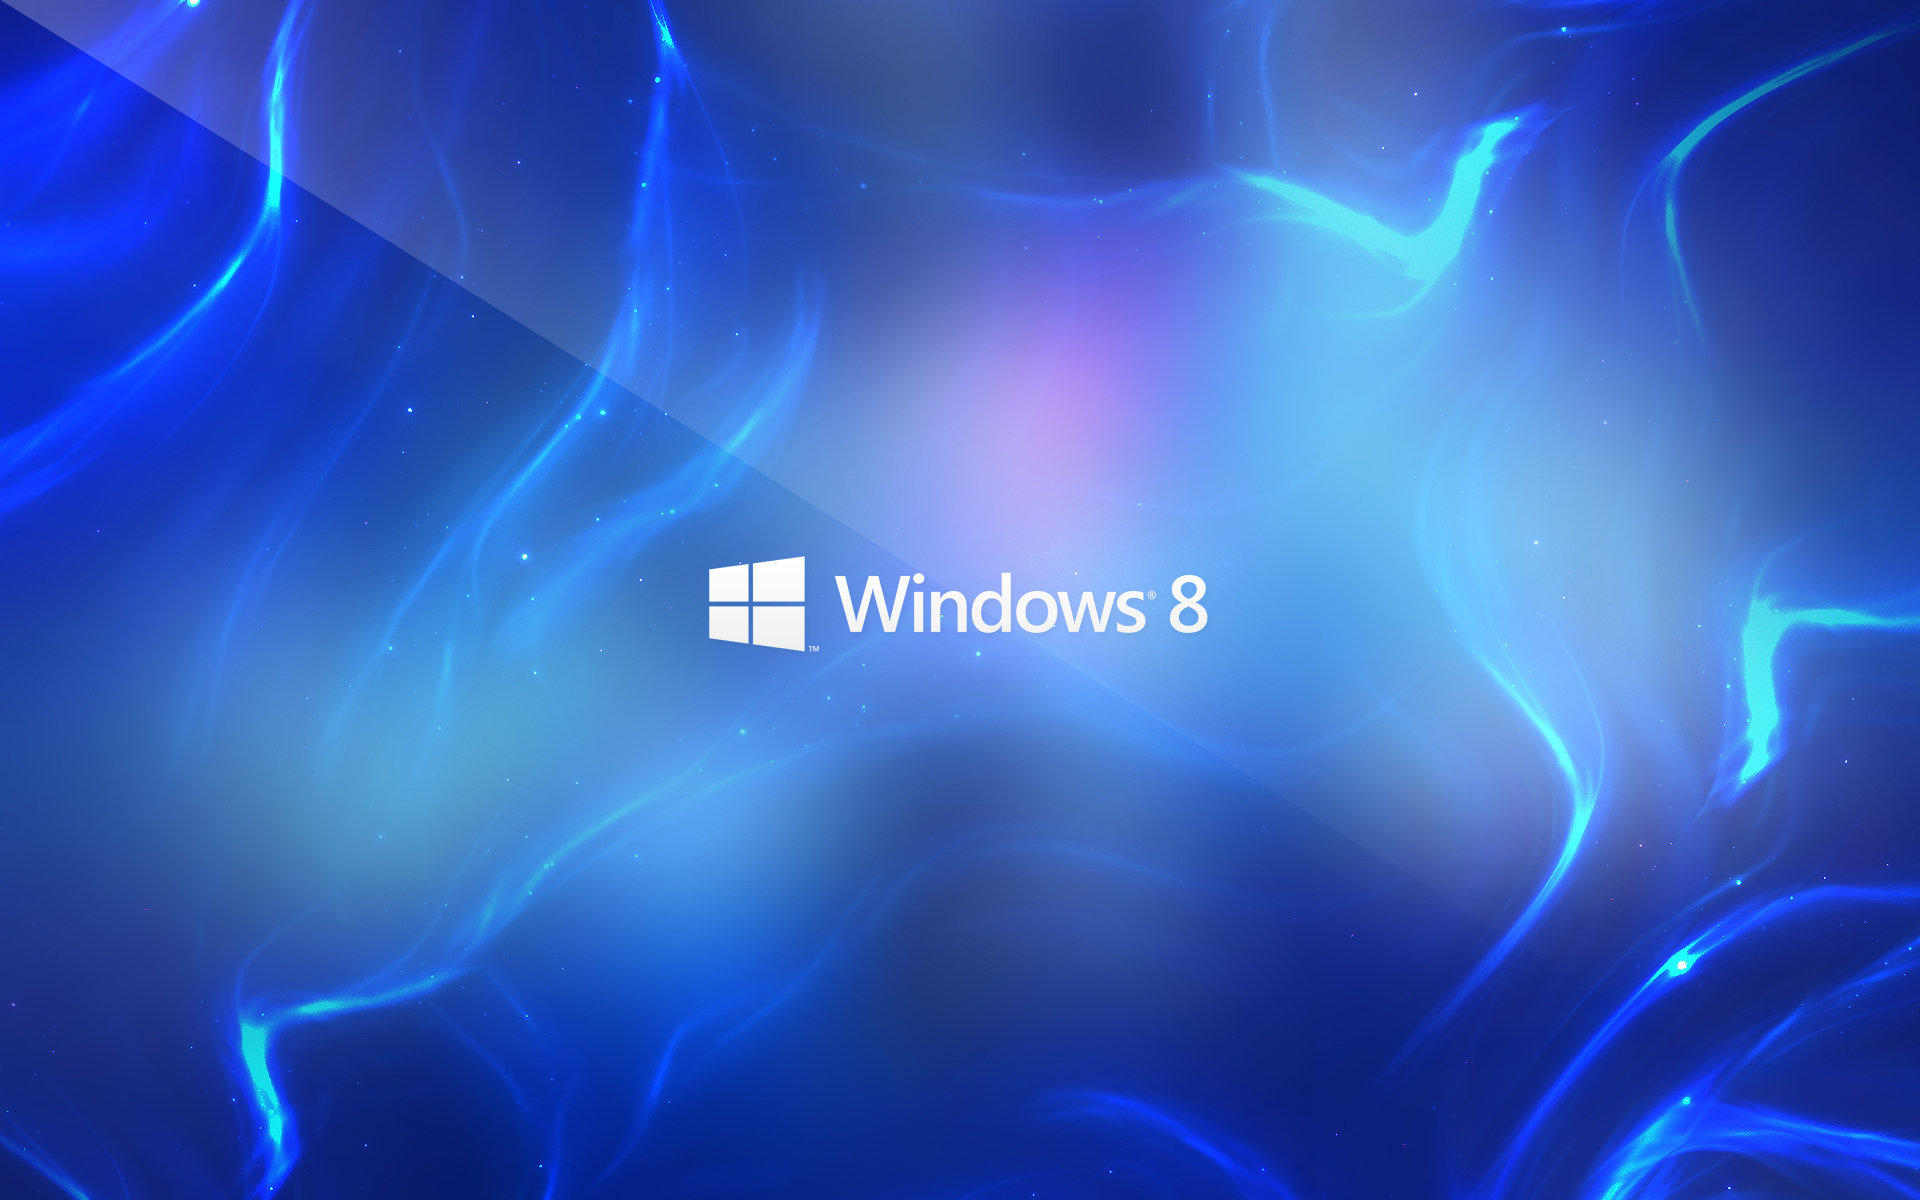 windows 8 metro wallpapers - 1920x1200 - 156050